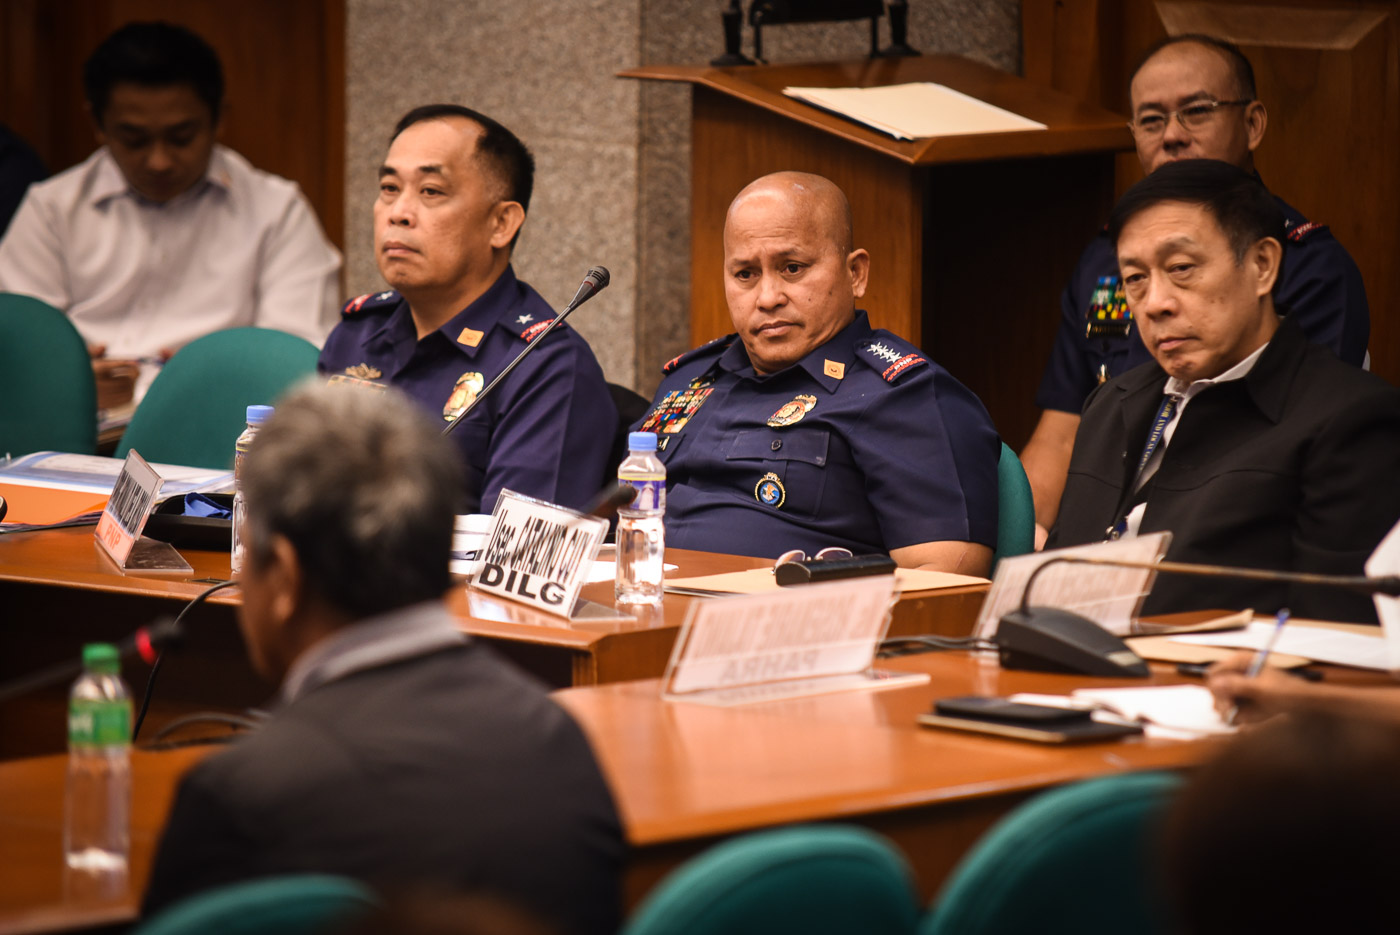 DEATH SQUADS? PNP chief Ronald dela Rosa looks on as Edgar Matobato recounts his supposed activities as a member of the so-called 'Davao Death Squad.' Photo by LeAnneJazul/Rappler